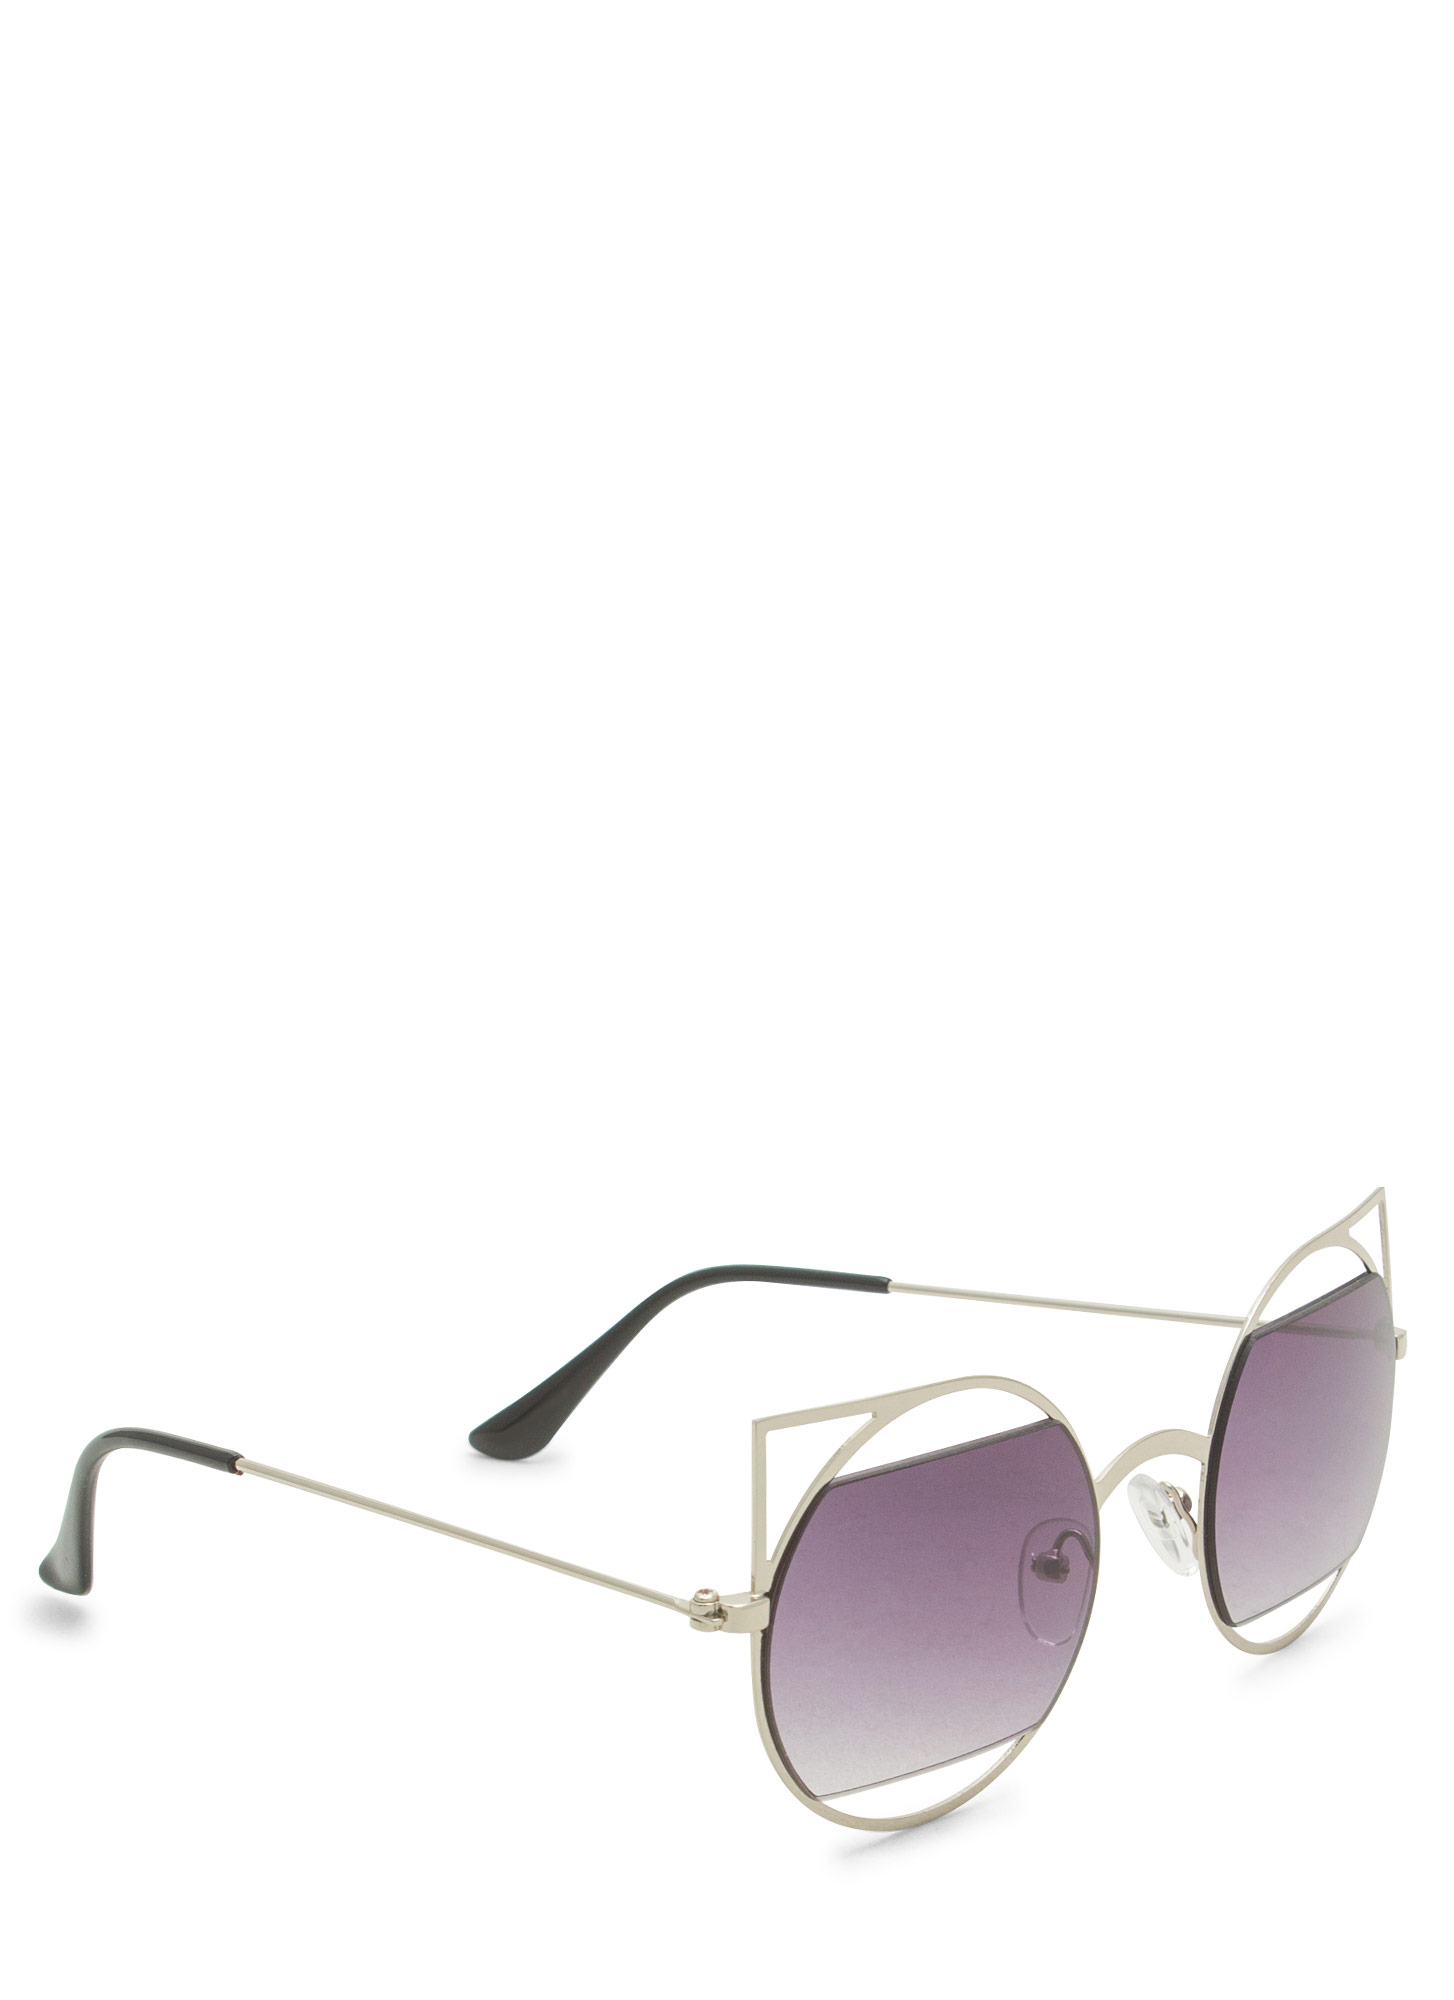 Geometric Lines Cat Eye Sunglasses SILVERCHAR